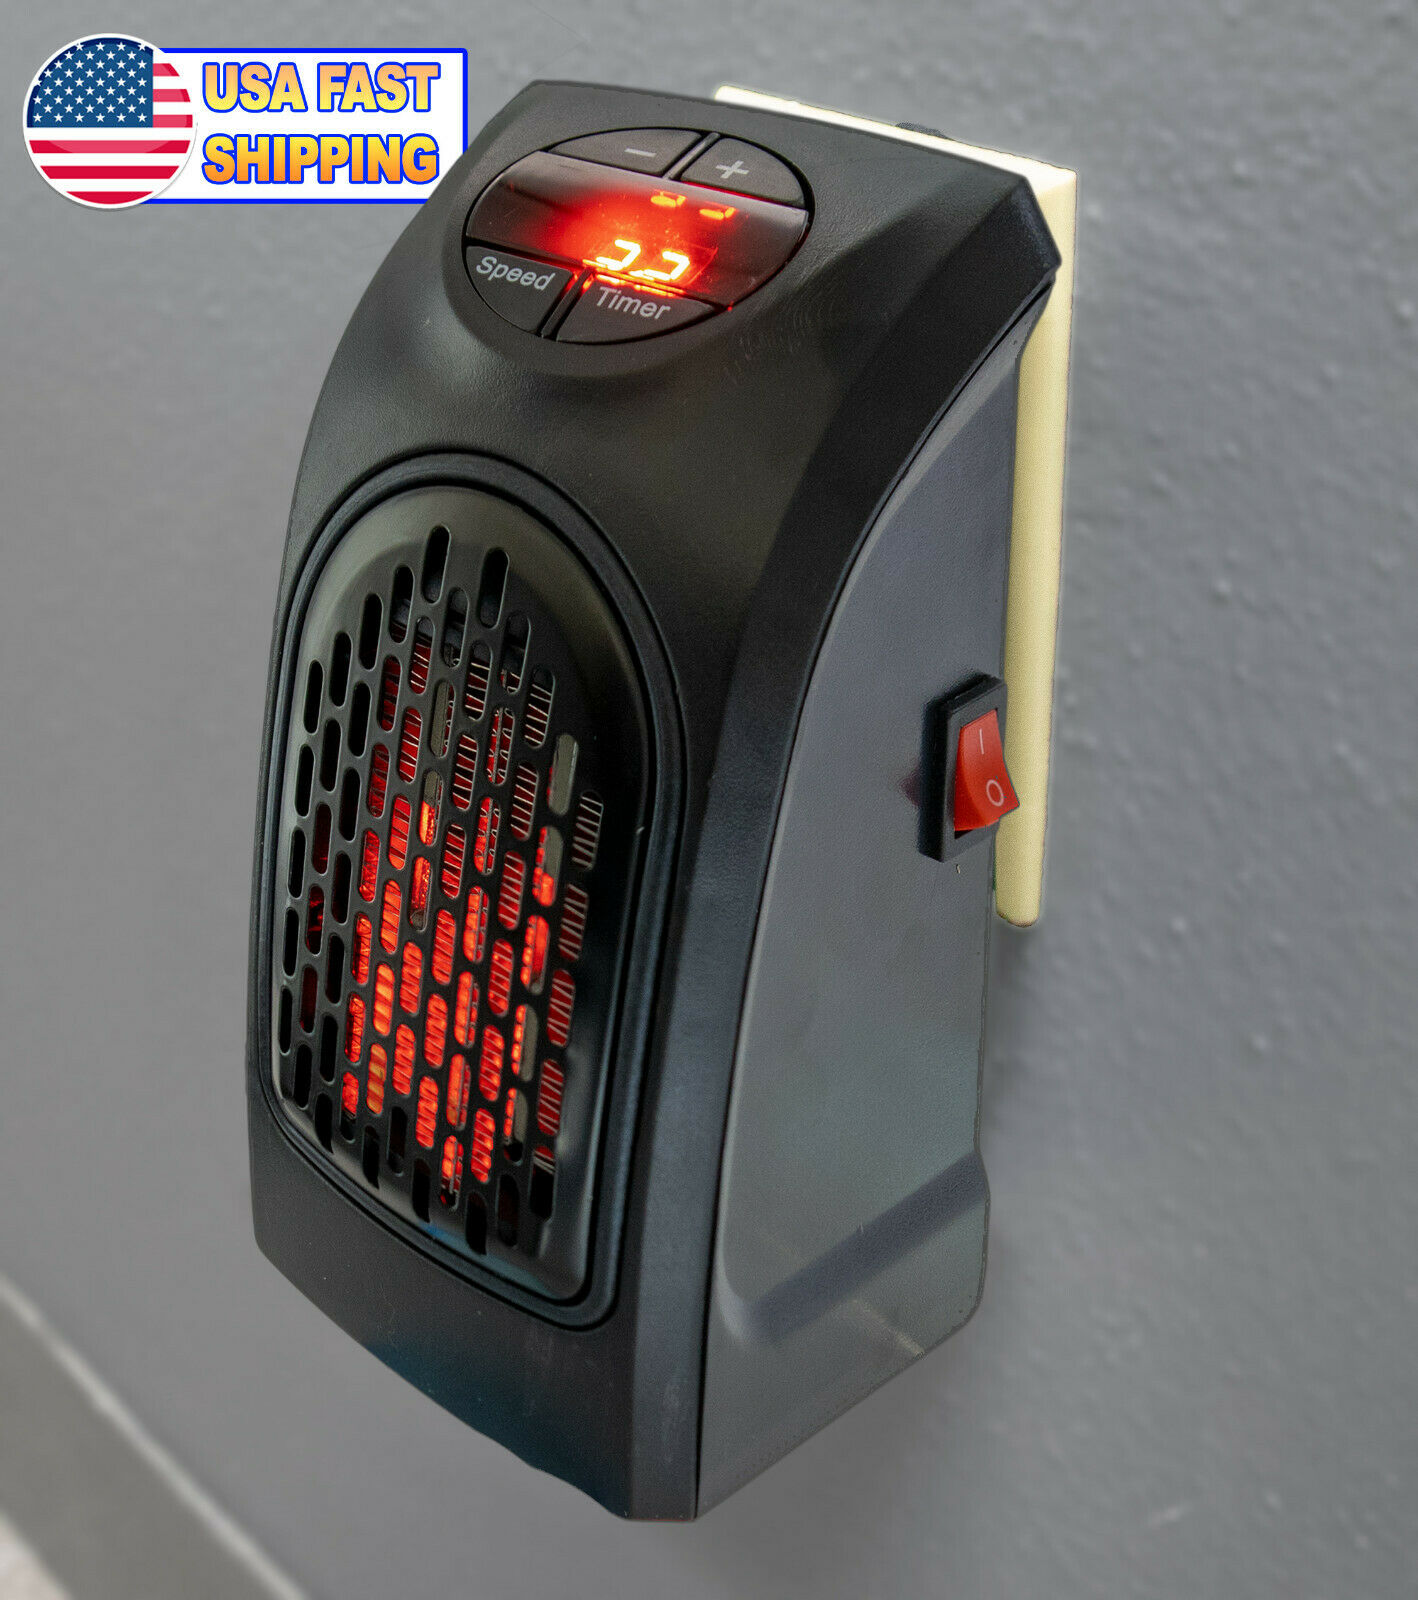 Portable Ceramic Mini Heater Wall Outlet Plug In Space Heate